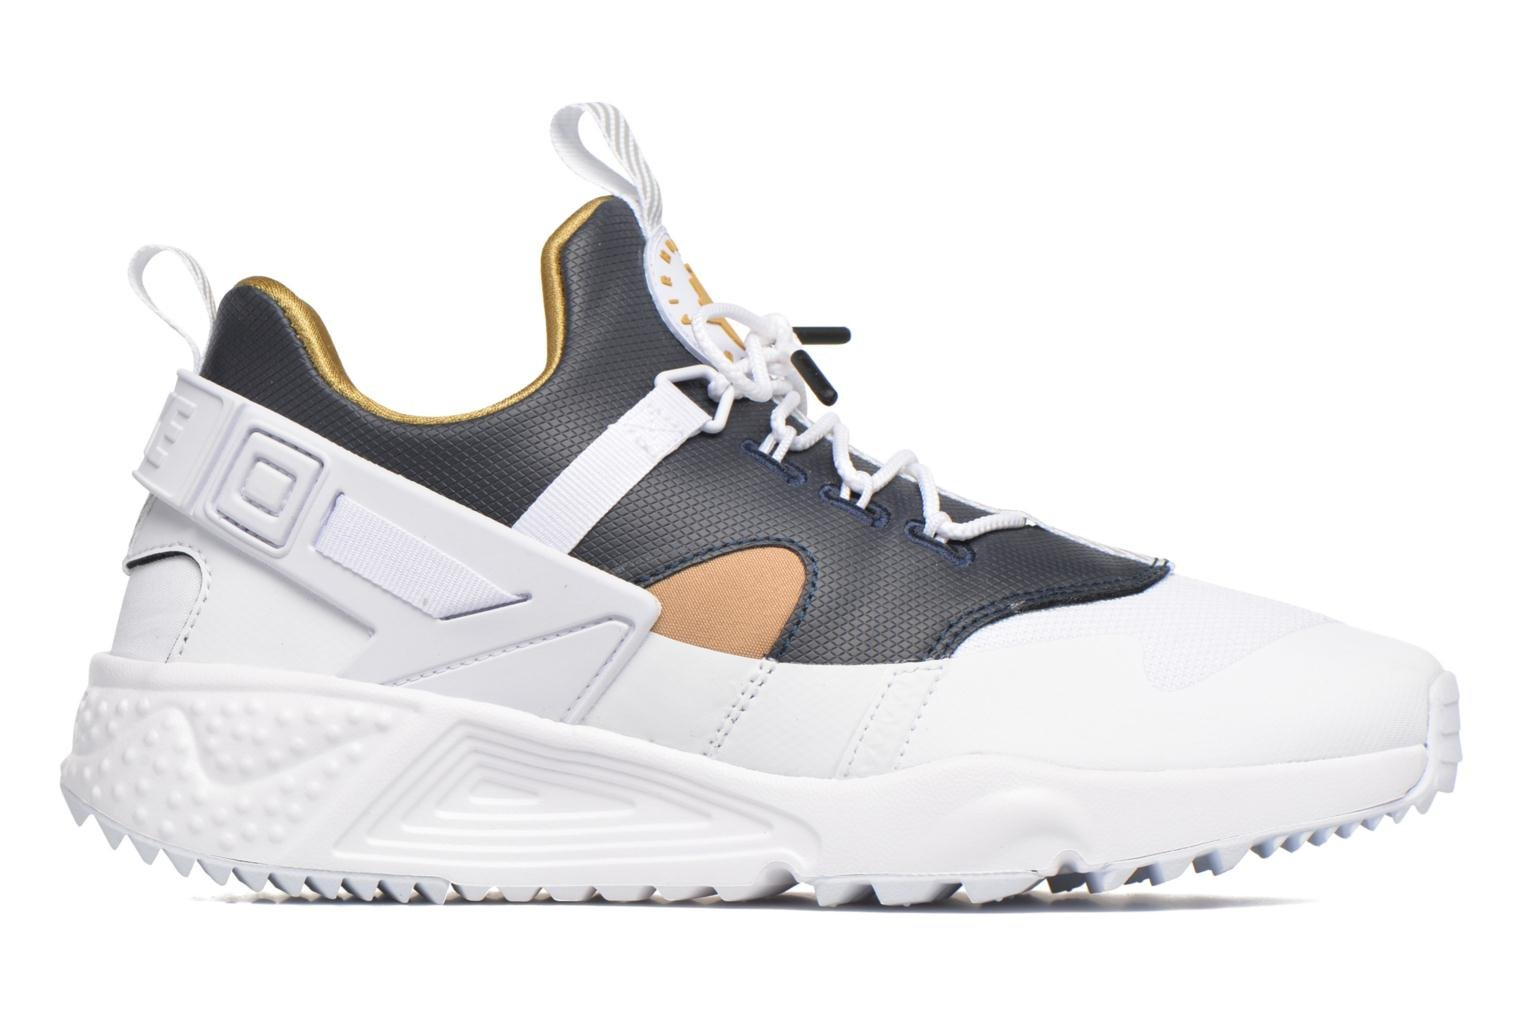 Nike Air Huarache Utility Prm White/Metallic Gold-Dark Obsidian-White